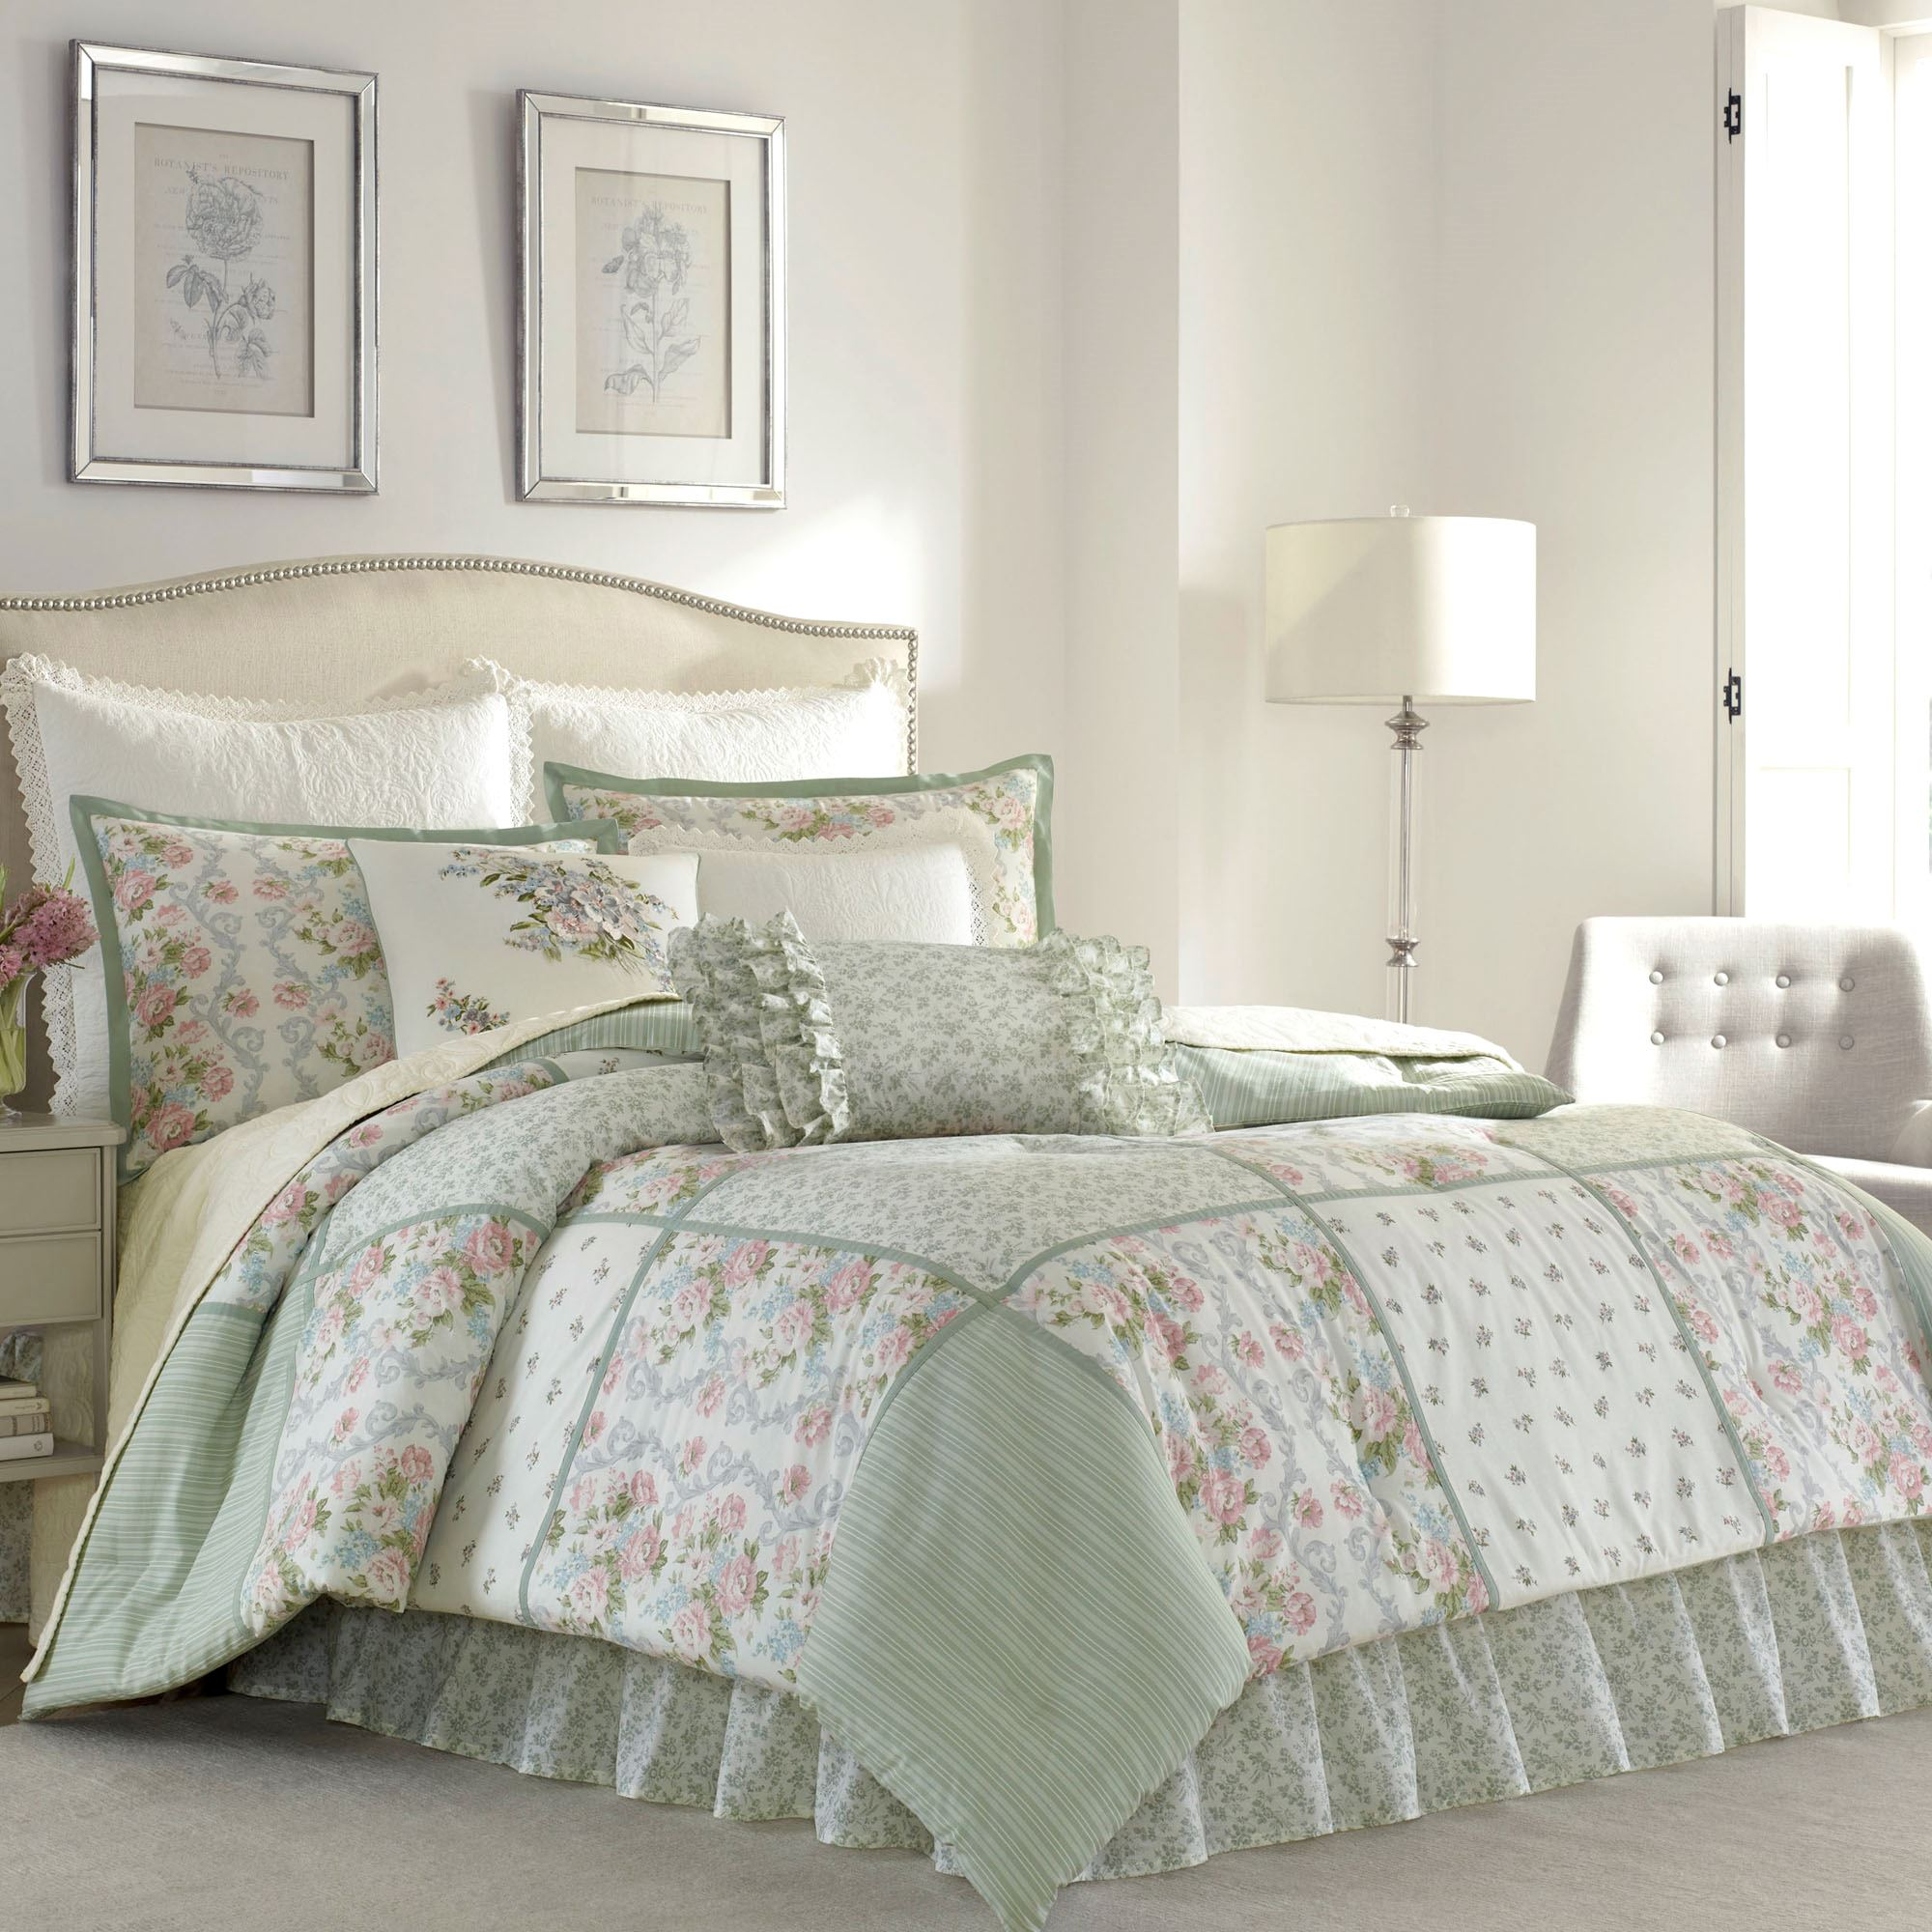 Harper Celadon Floral Block Comforter Bedding By Laura Ashley